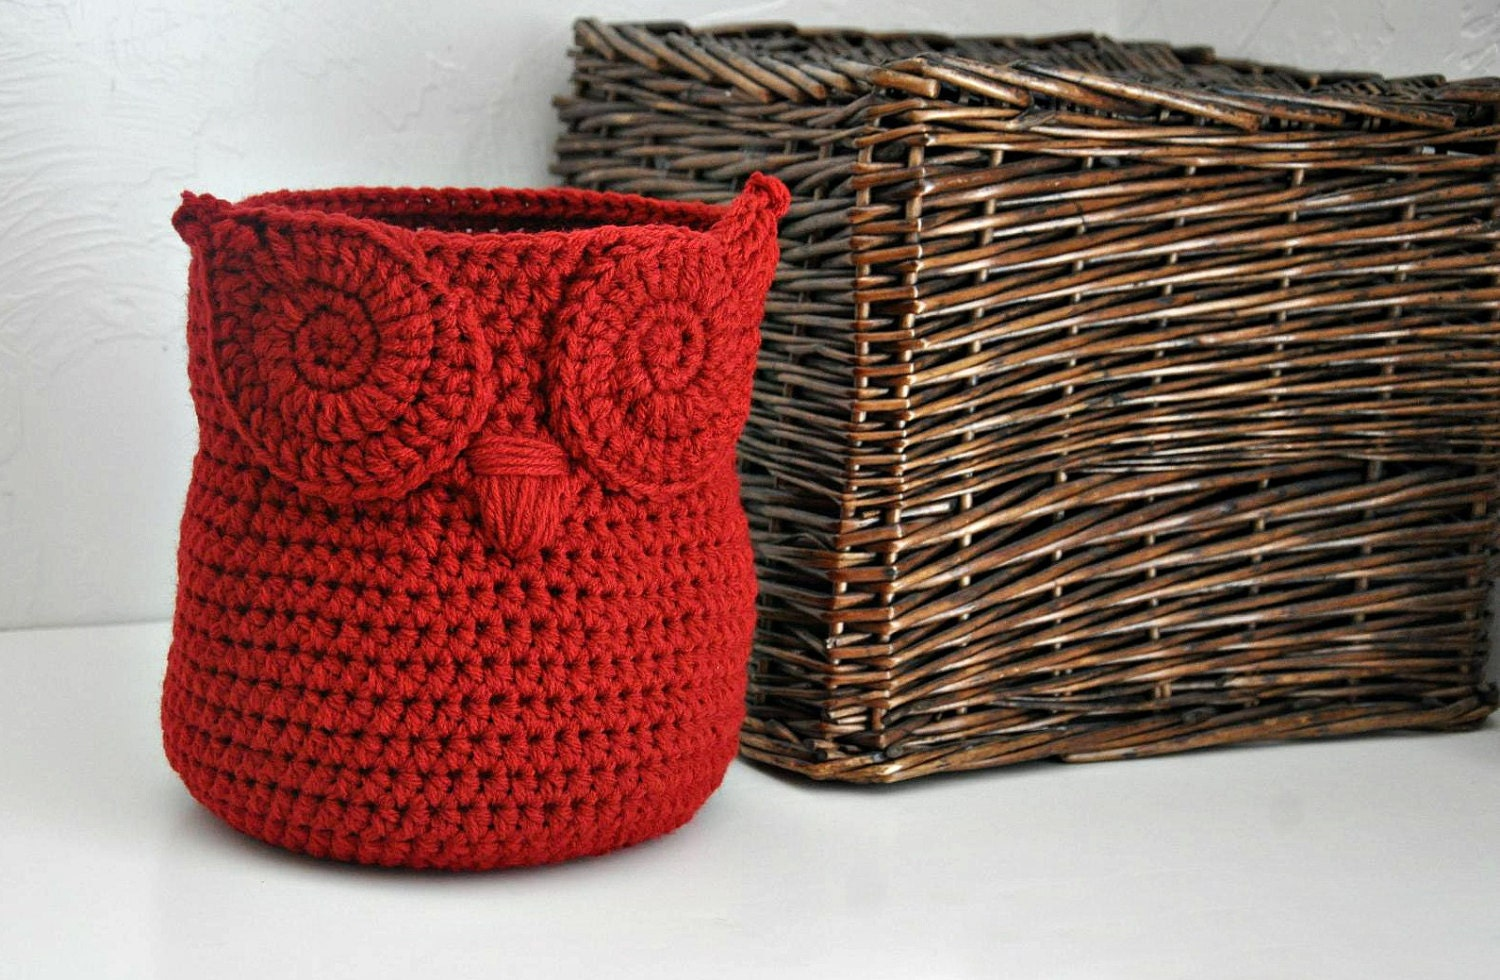 Red Owl Basket Crocheted Bin Yarn Holder by AandBDesignStudio